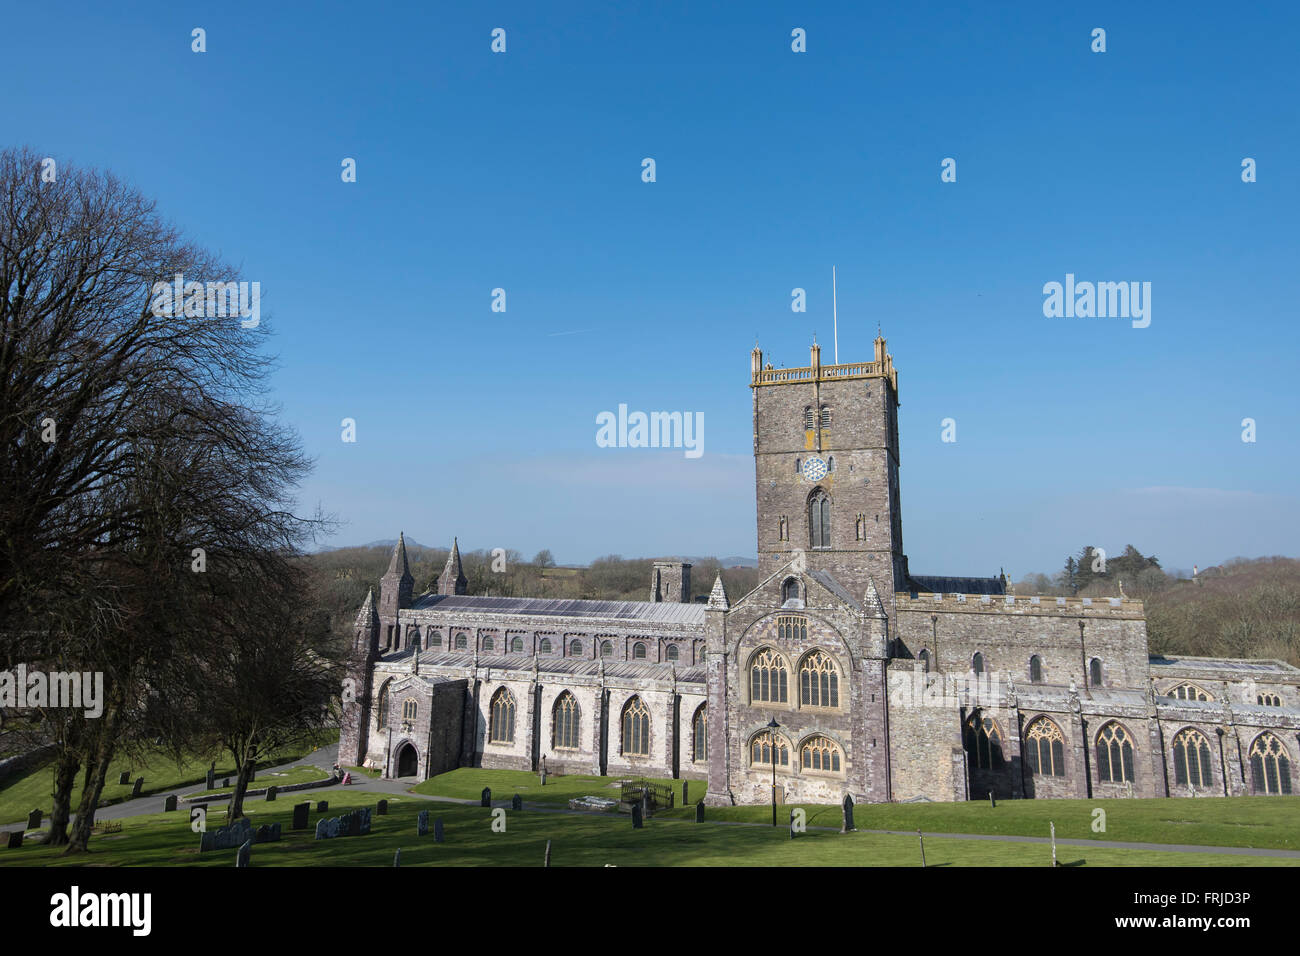 St. David's Cathedral in St. David's, Pembrokeshire, West Wales. Stock Photo